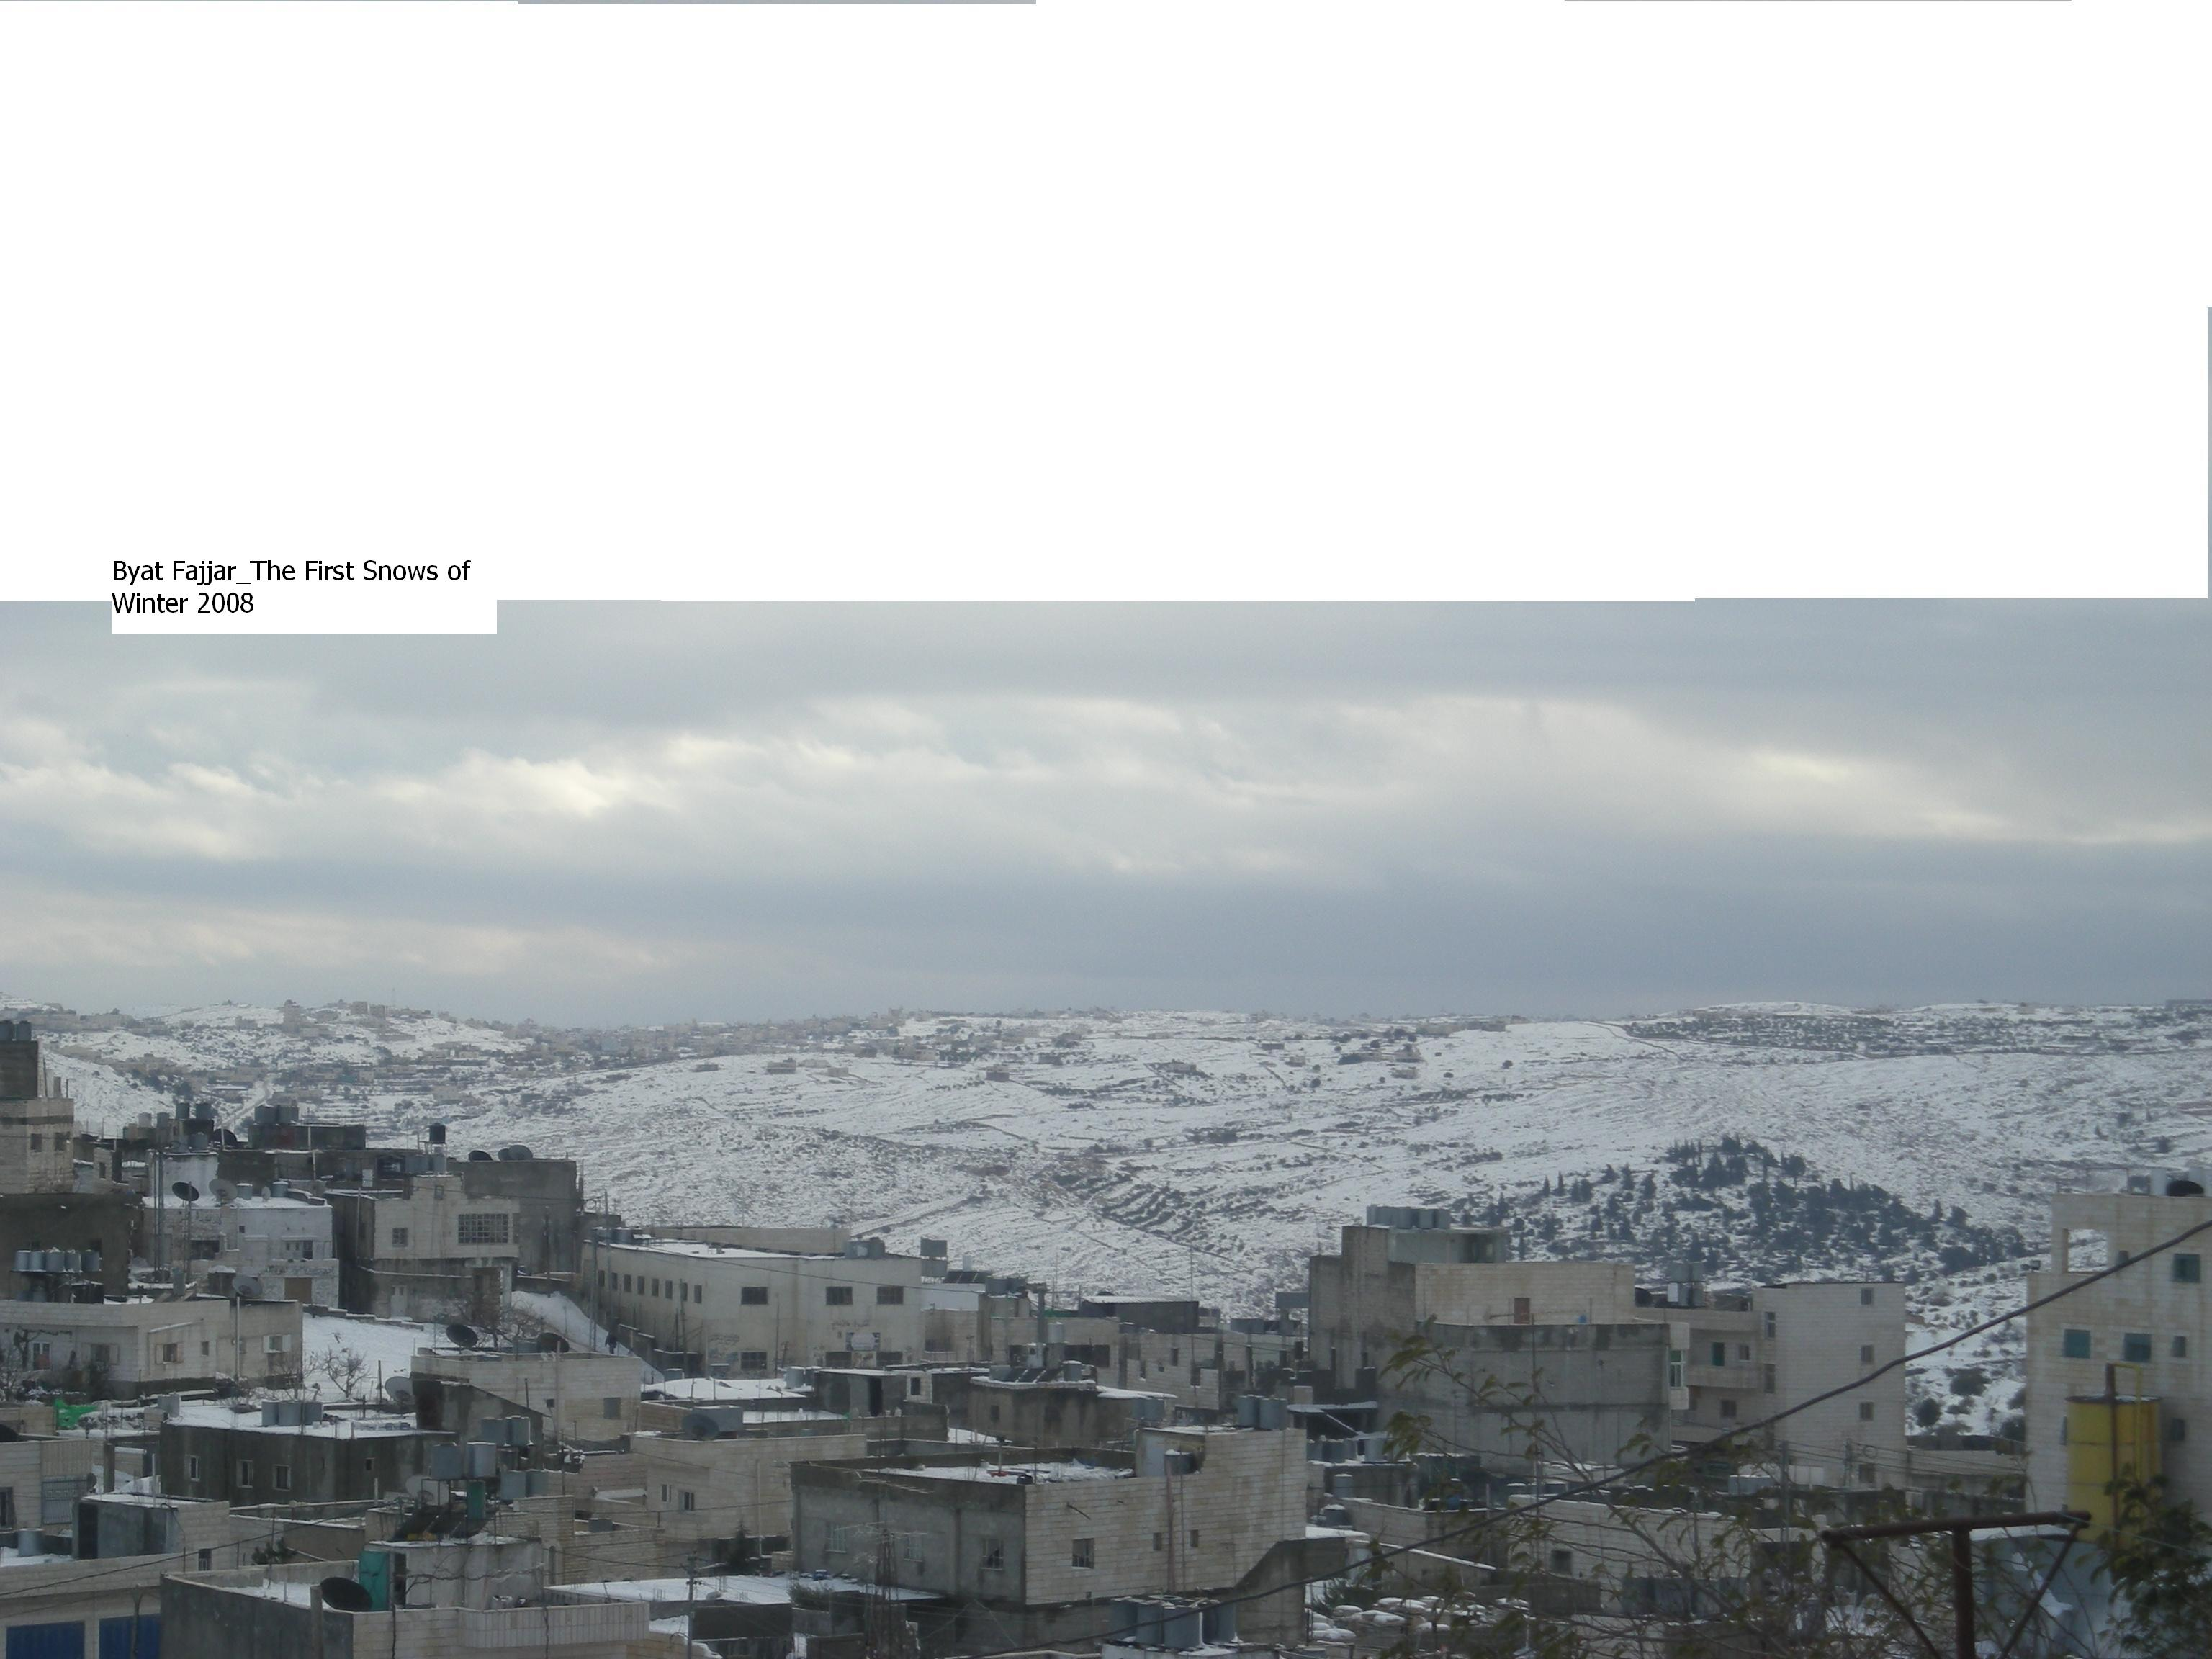 Bayt Fajjar - بيت فجّار : The First Snows of Winter 2008